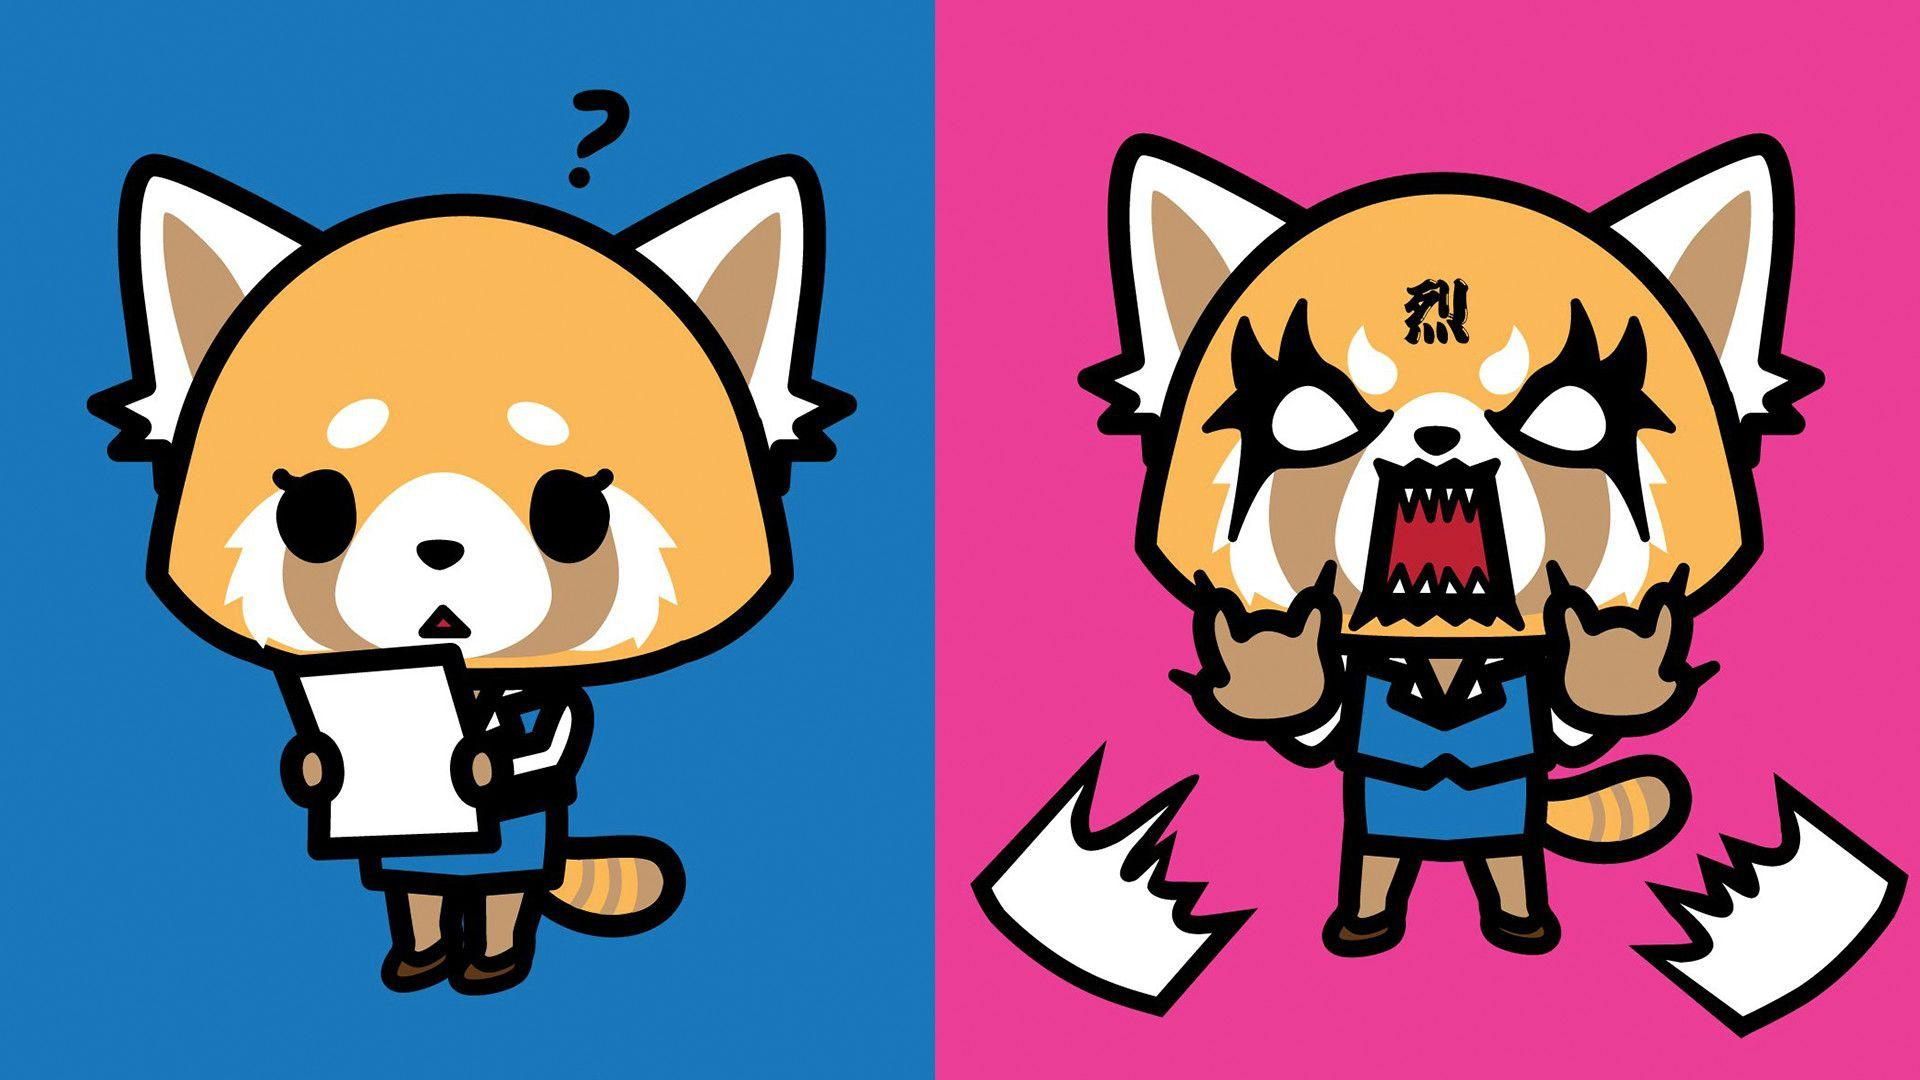 Sanrio heads to SDCC with exclusives of Aggretsuko and more!